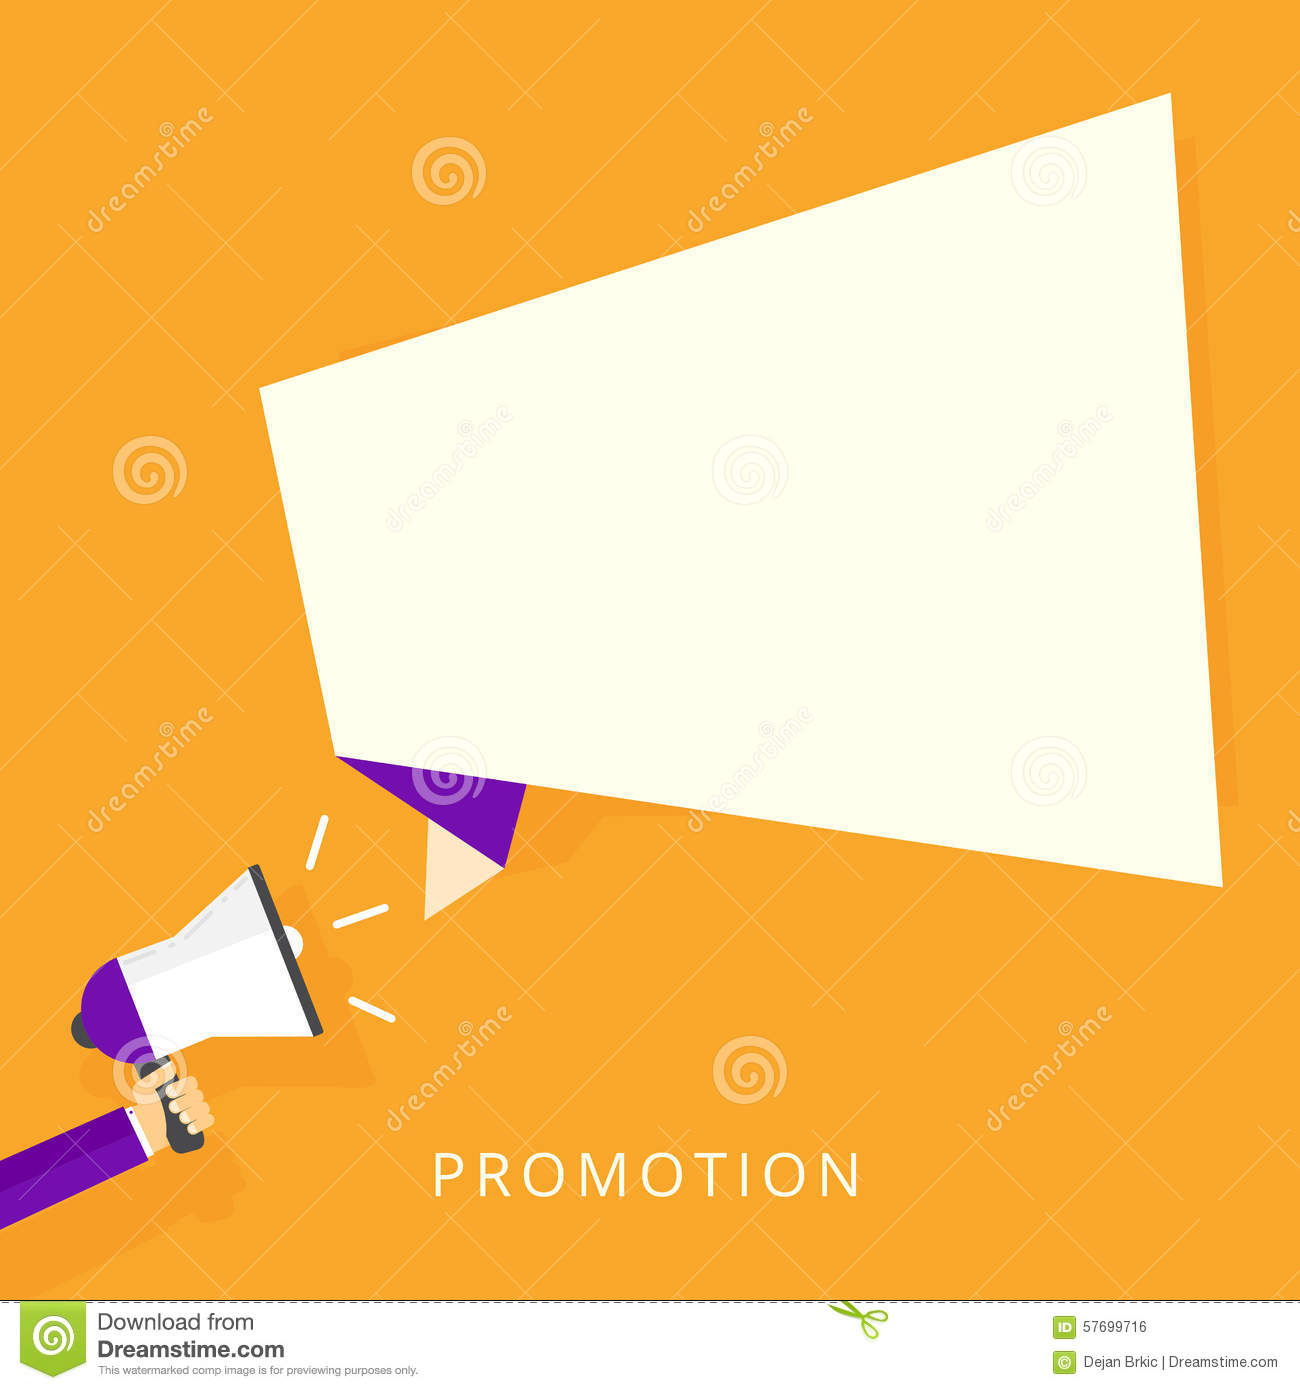 Promotion Stock Vector